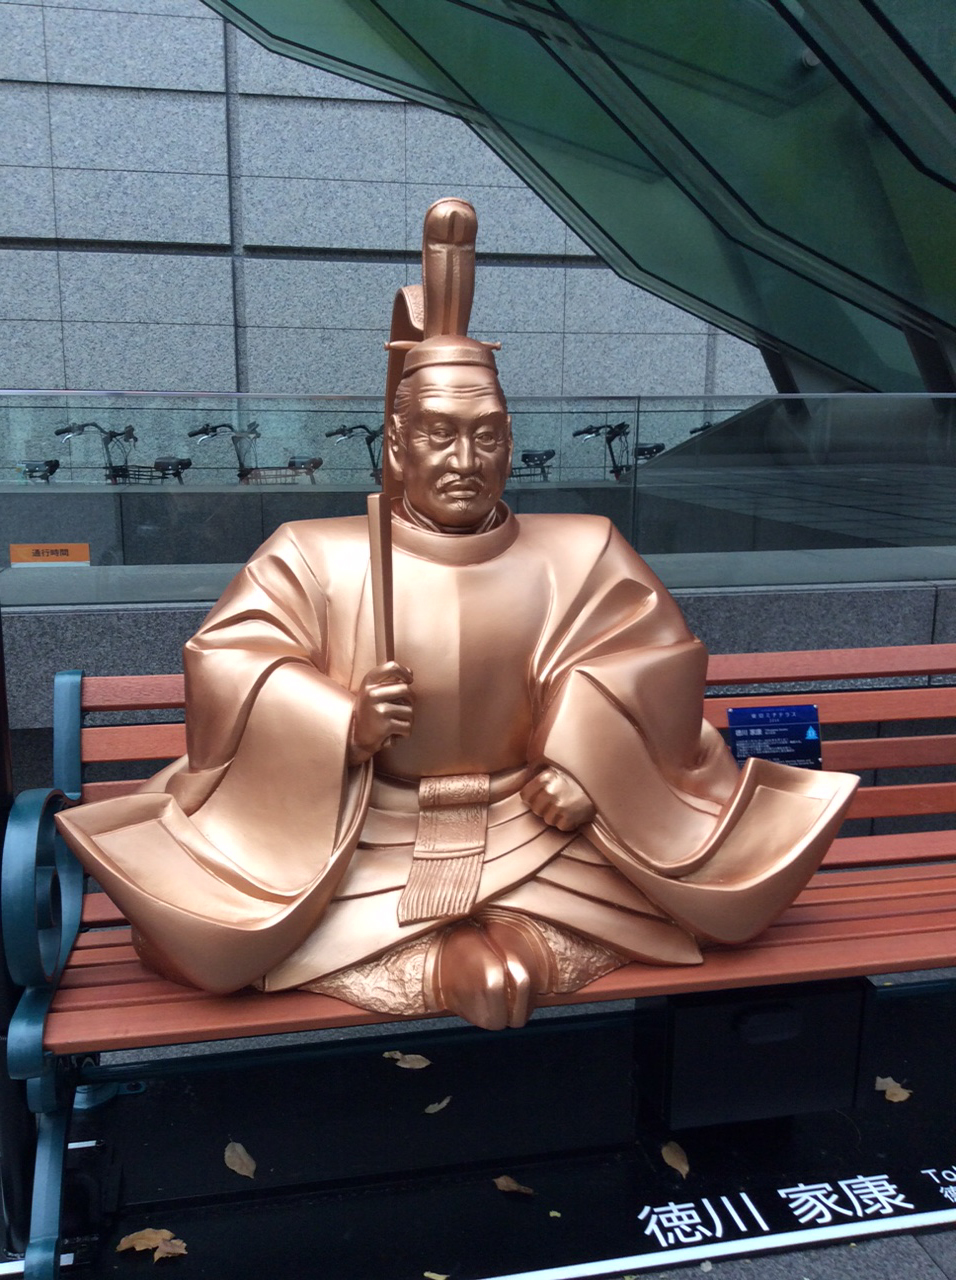 As one of the Lighted Bench sculptures, this copper coloured Japanese male in traditional costume perches almost cross legged clutching a baton/stick? In the background a row of bicycle sadles and handlebars are visible by a grey granite wall